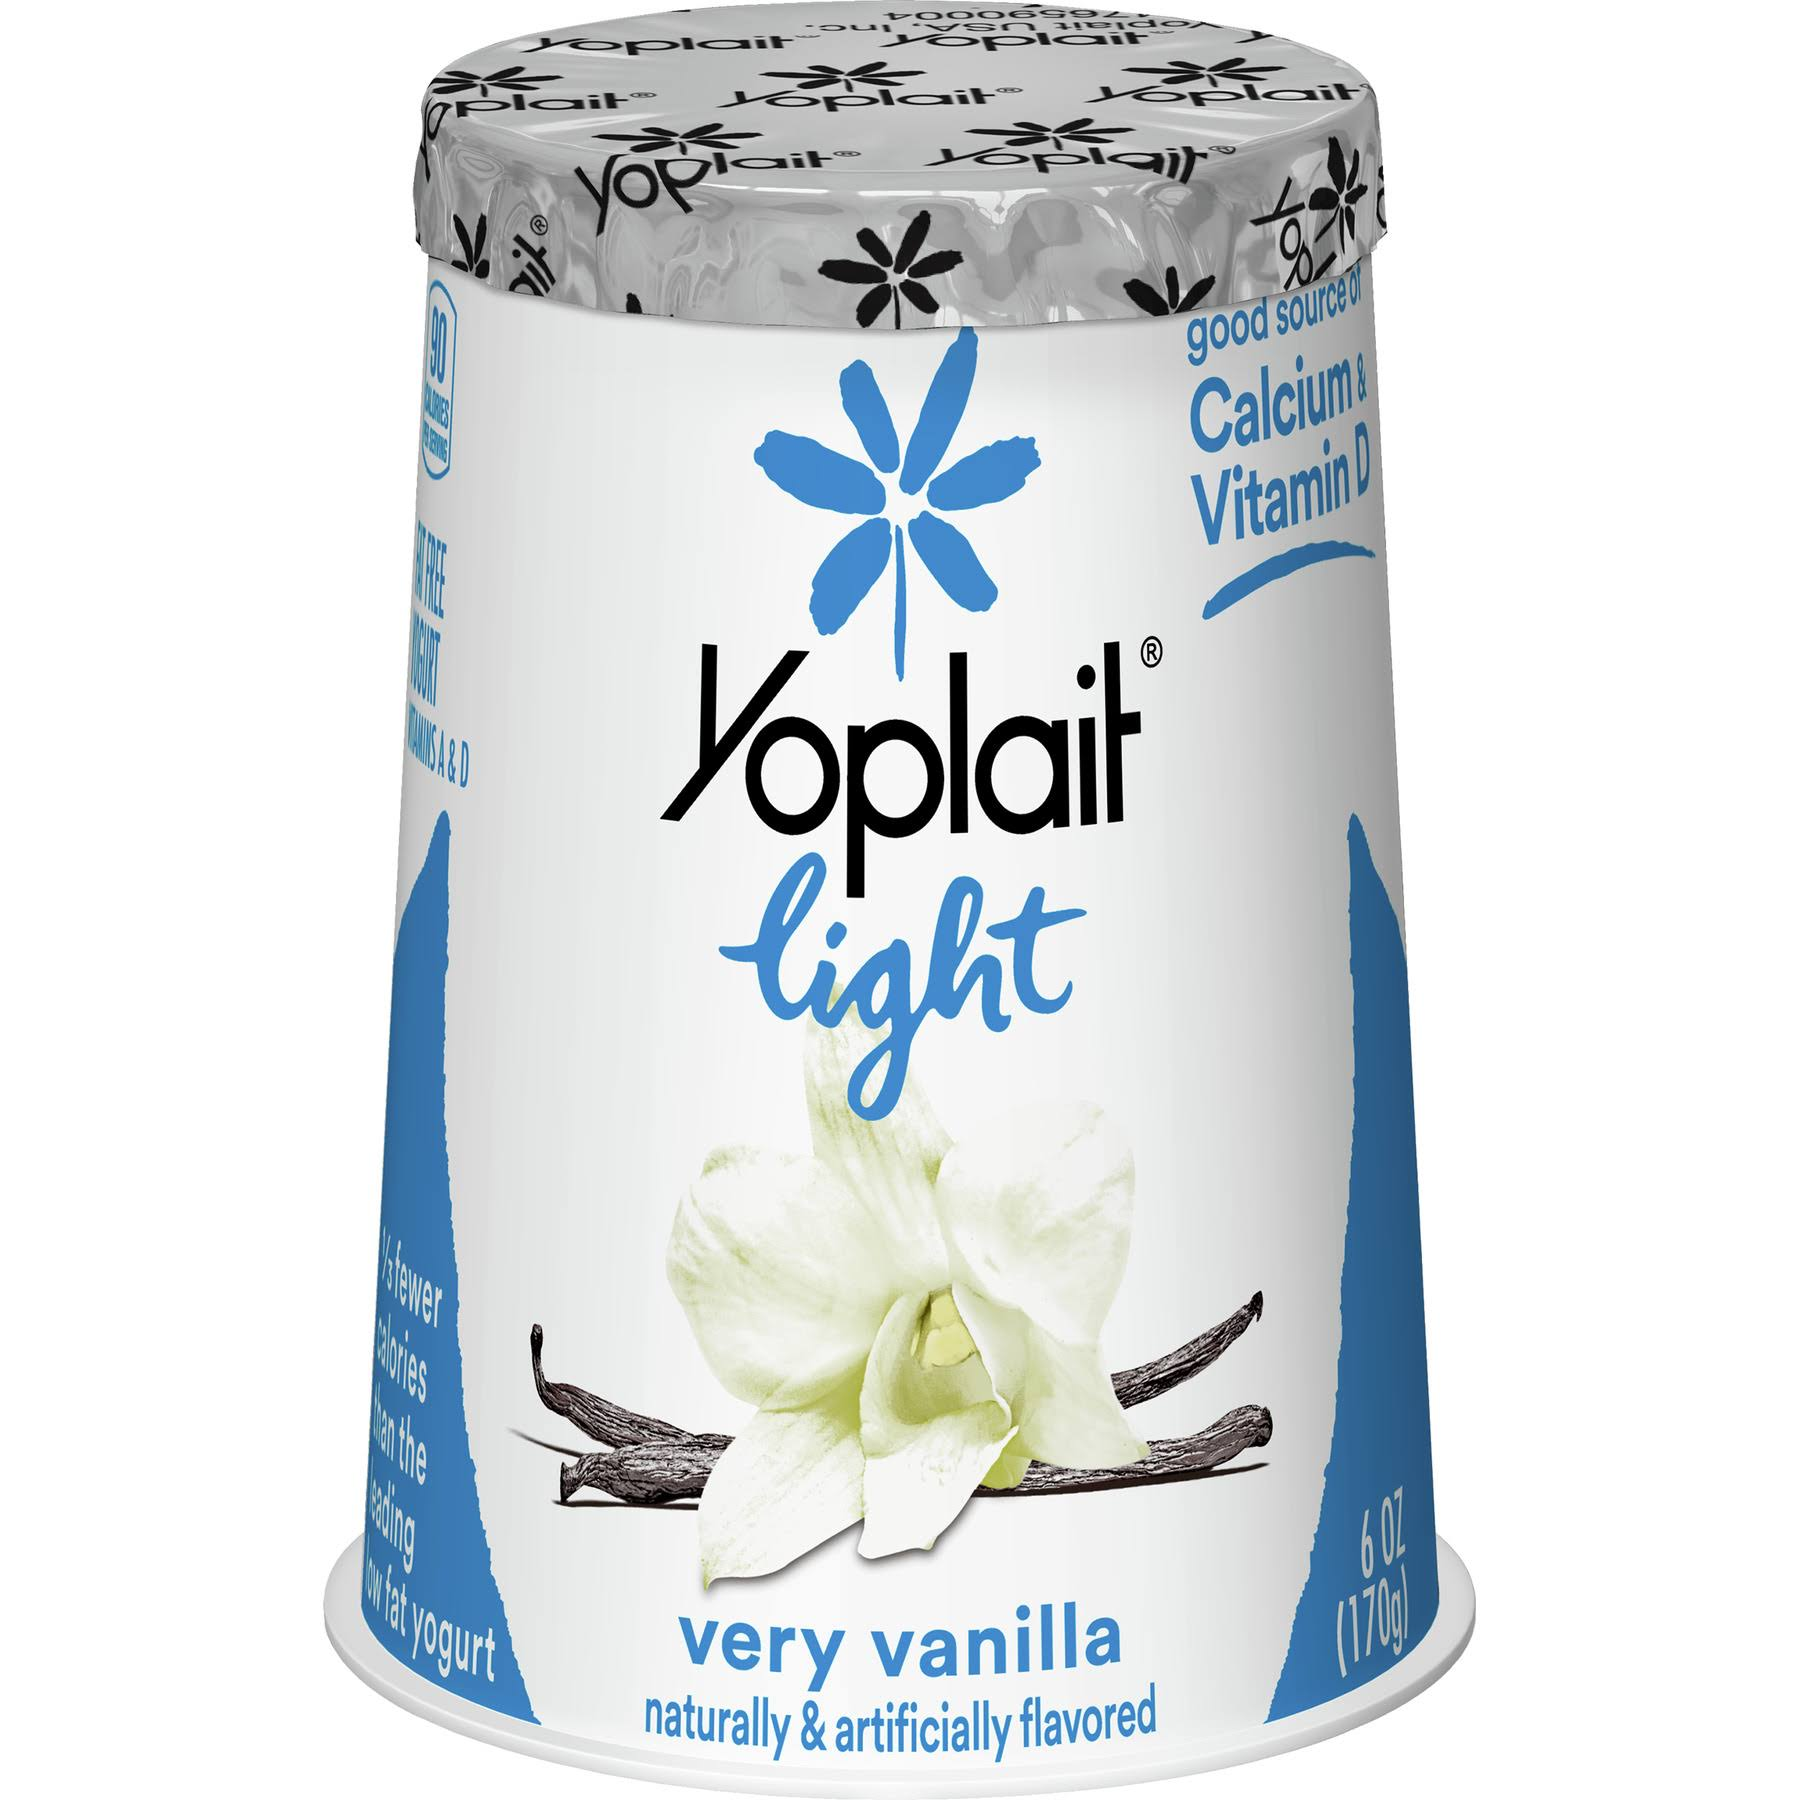 Yoplait Light Fat Free Yogurt - Very Vanilla, 170g